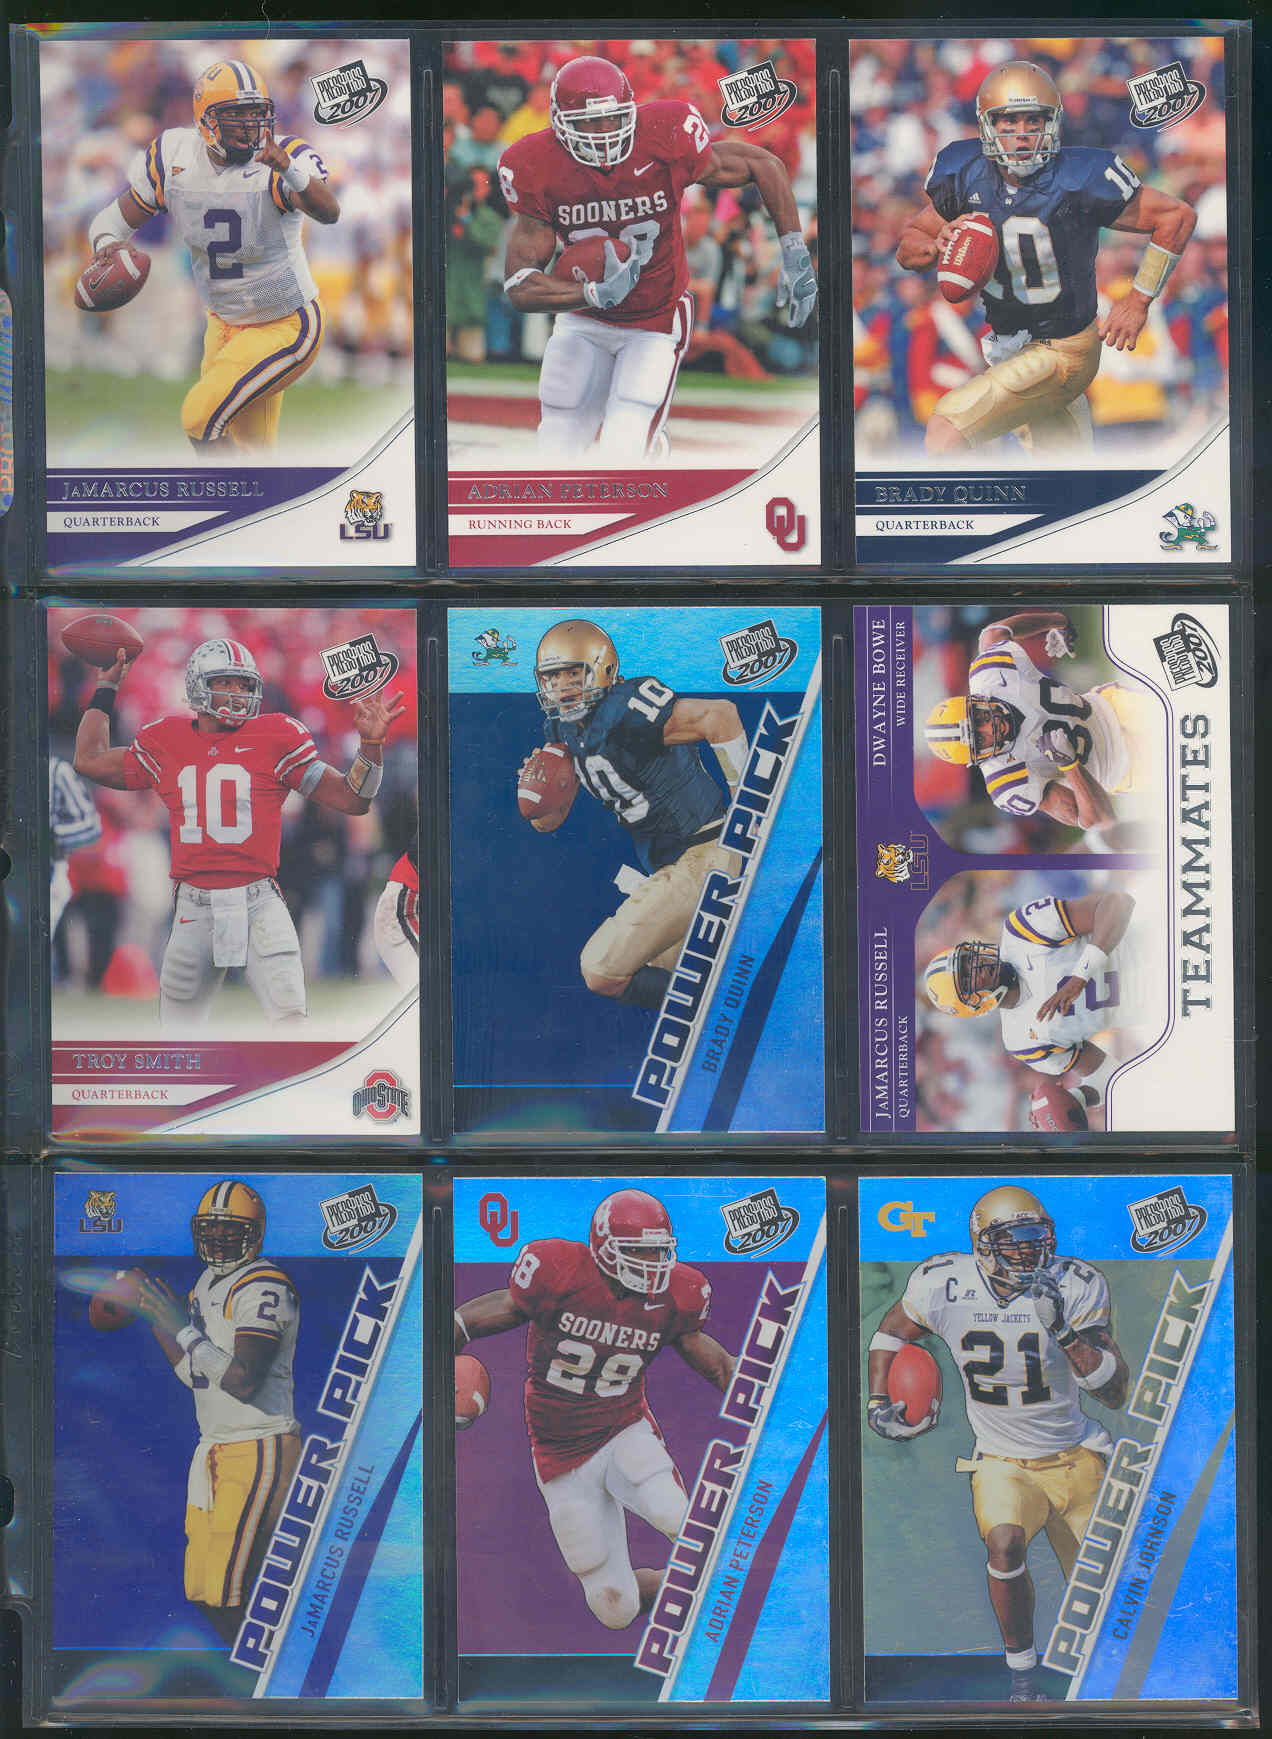 2007 Press Pass Complete Set 1-100 with 101-105 Power Pick SP Rookie Adrian Peterson Brady Quinn JaMarcus Russell Calvin Johnson Ted ginn Jr Low Shipping Cost!! Beckett Value over $100